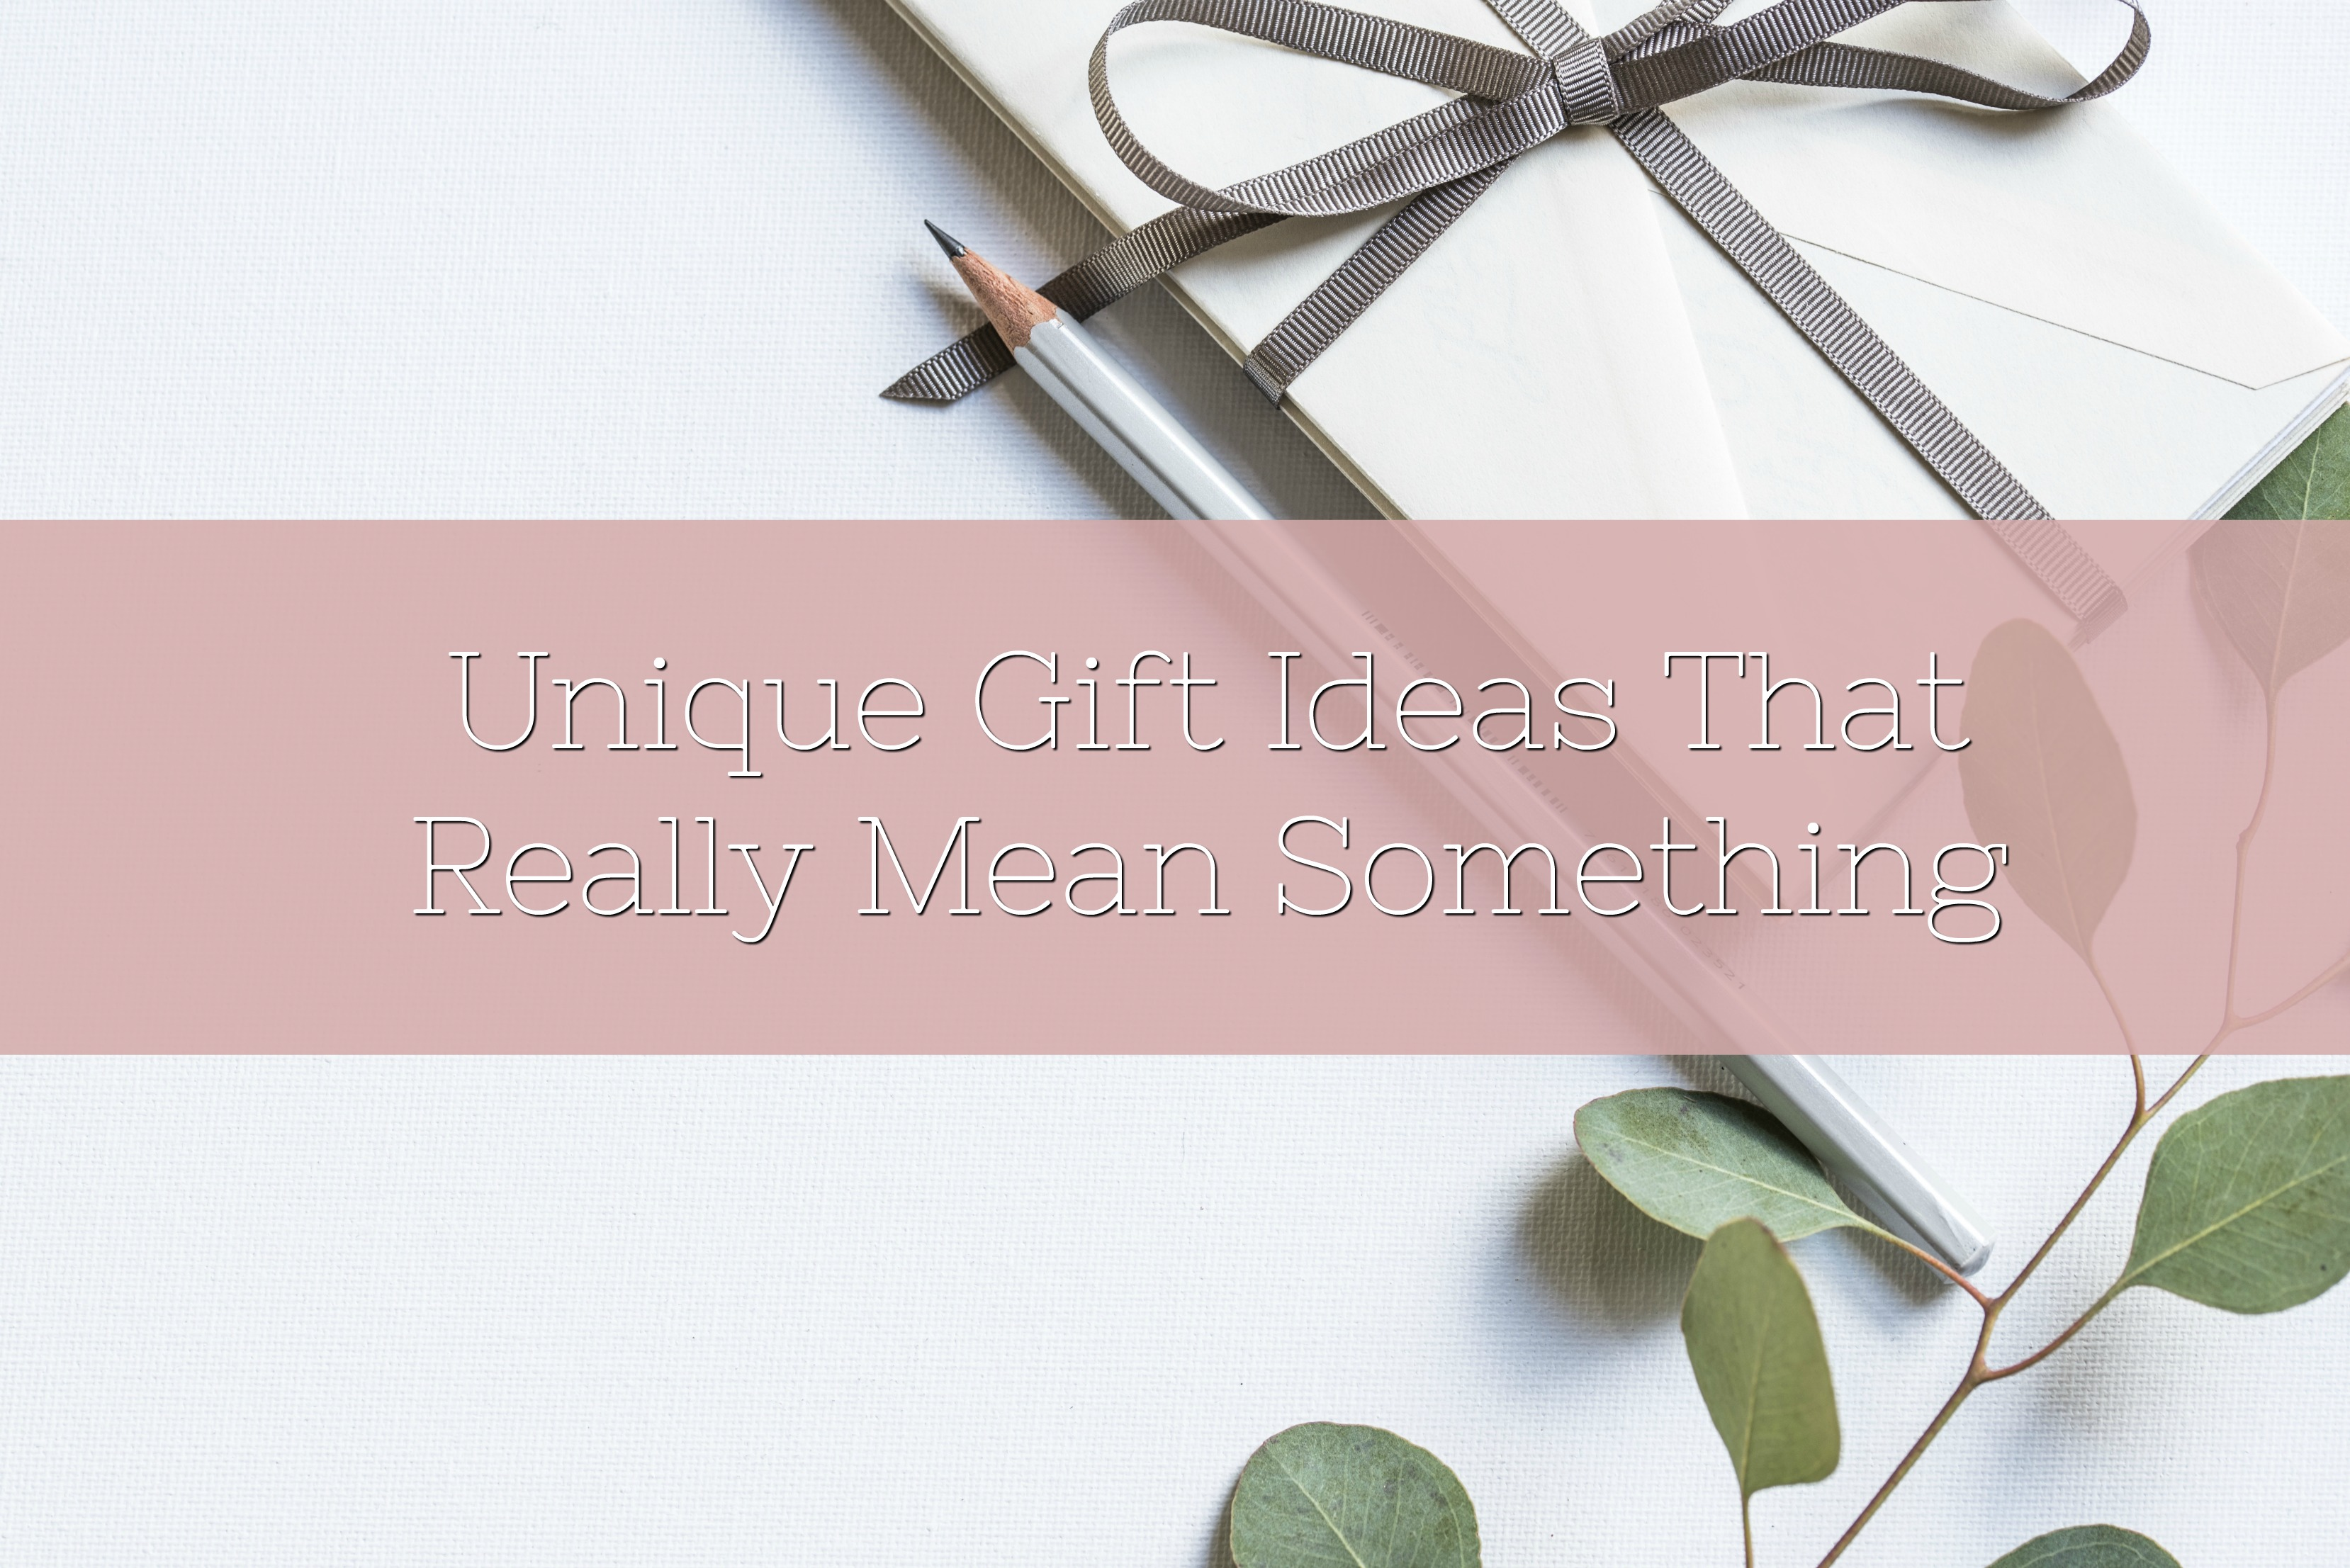 Unique Gift Ideas That Really Mean Something